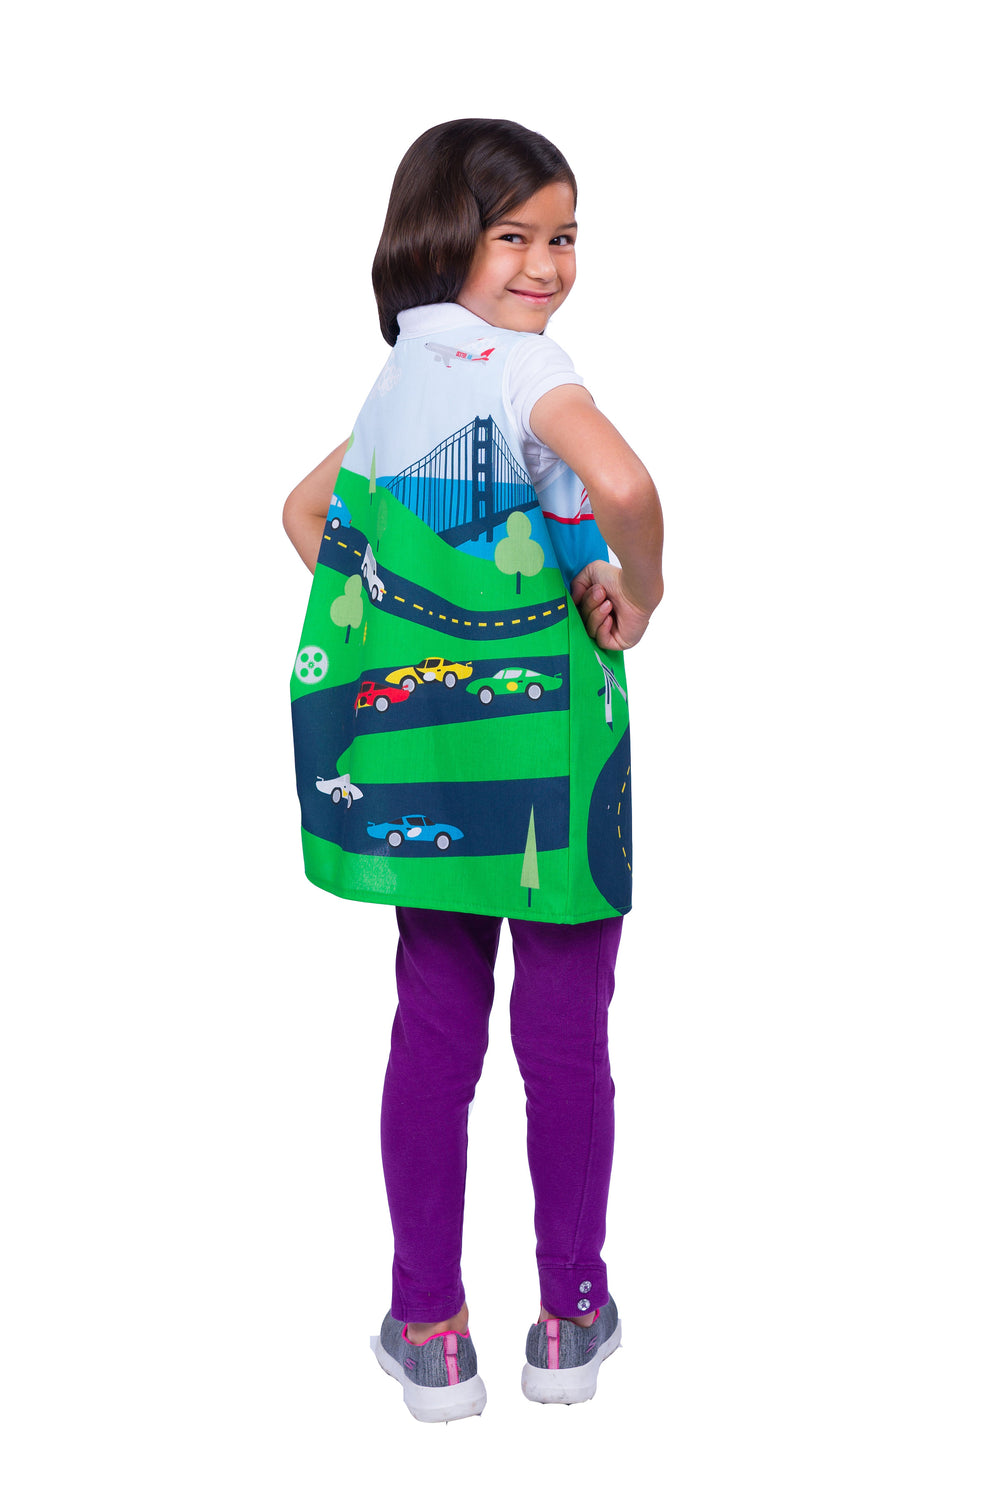 Mechanical Engineer Dress-up Costume Age 4-7